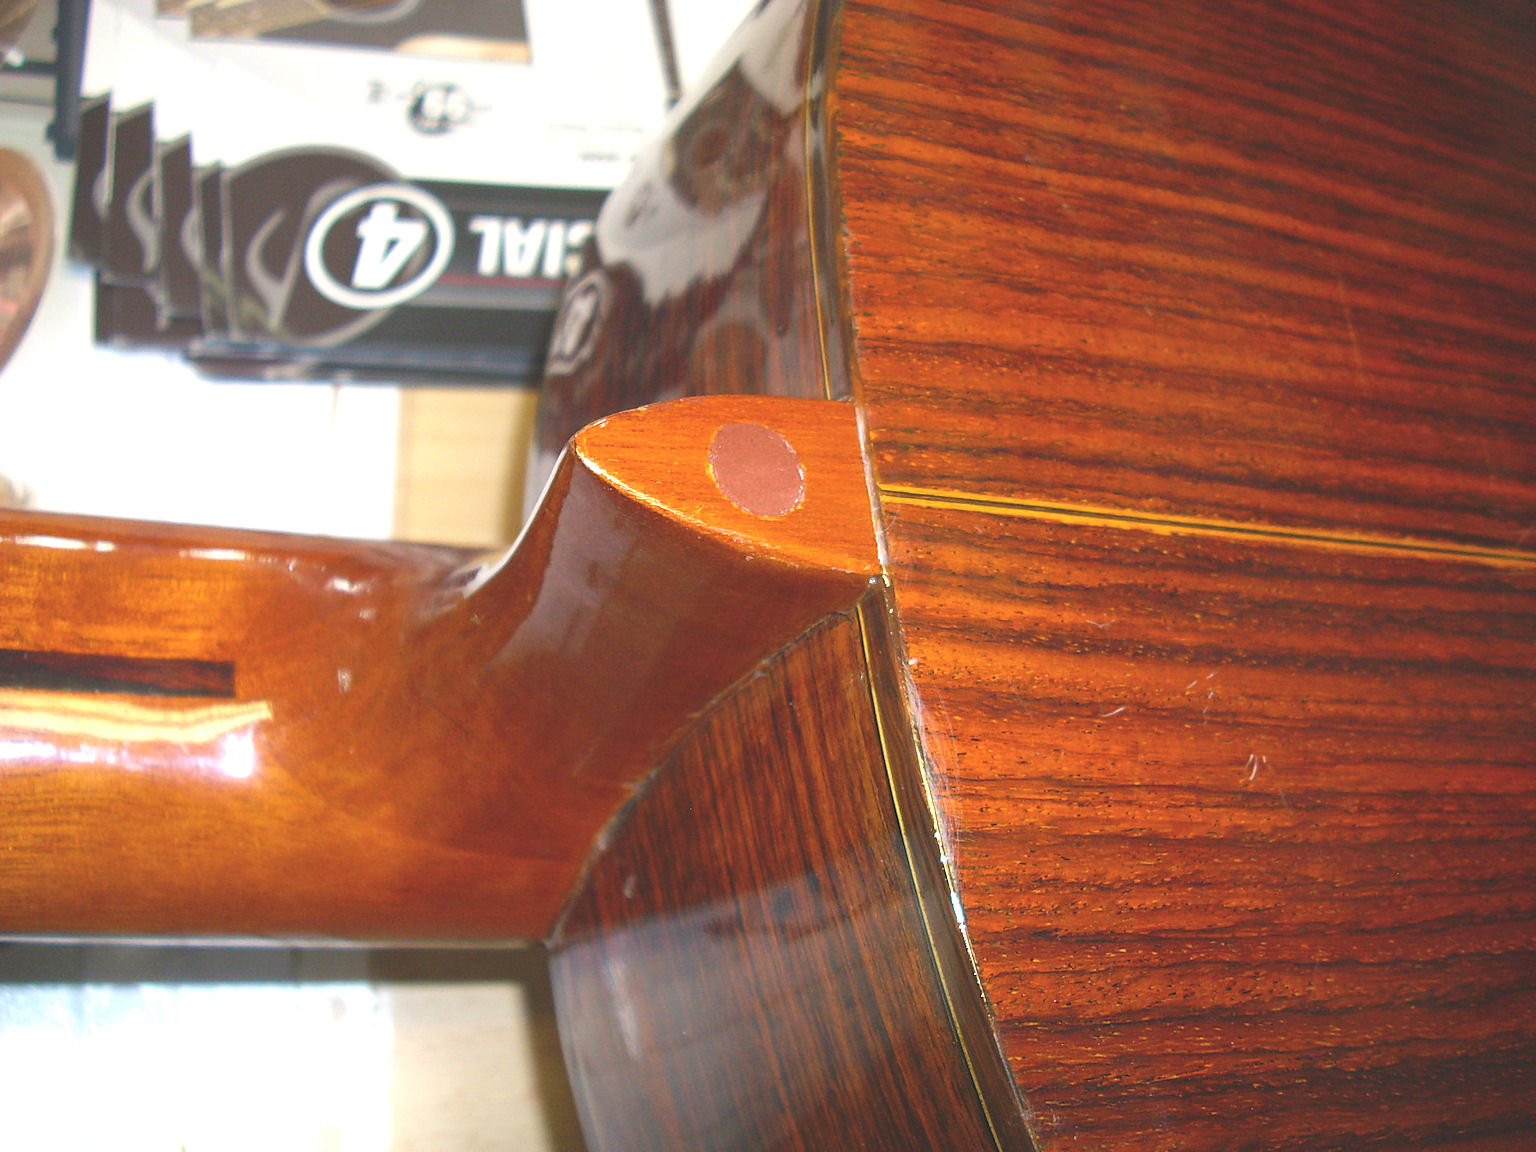 Ibanez York Classic ex Halsbruch neckfoot repaired 3